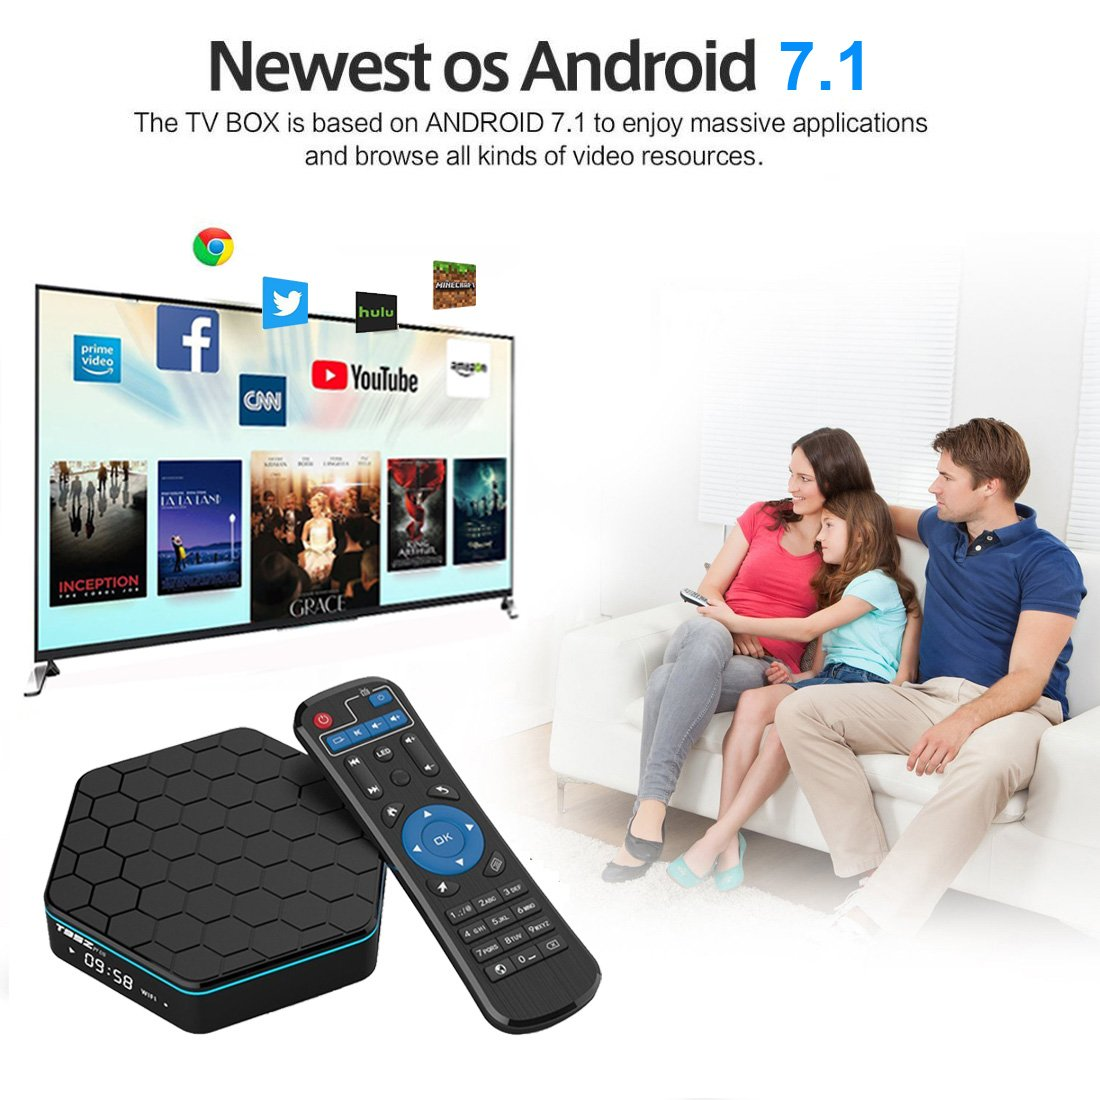 EASYTONE T95Z PLUS Android TV Box,Octa Core Smart TV Box 2GB RAM 16GB ROM Android 7.1 Amlogic S912 Support 2.4G/5G Dual Wifi/1000M LAN/BT 4.0/4K Resolution/3D TV Boxes with Mini Wireless Keyboard by EASYTONE (Image #2)